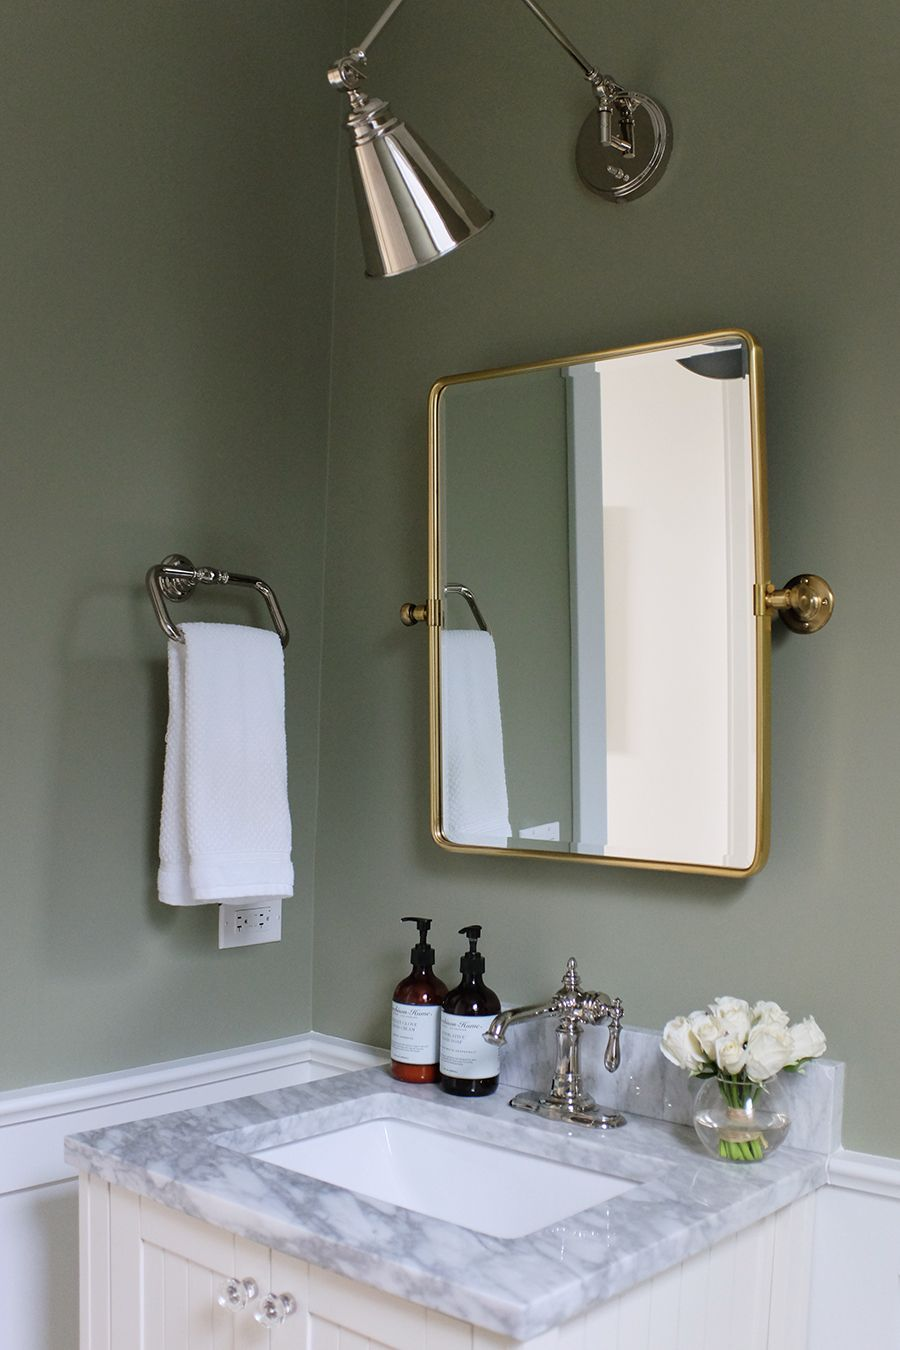 Our Powder Room Painting The Walls Sage Green Green Bedroom Walls Green Bathroom Paint Sage Green Bedroom